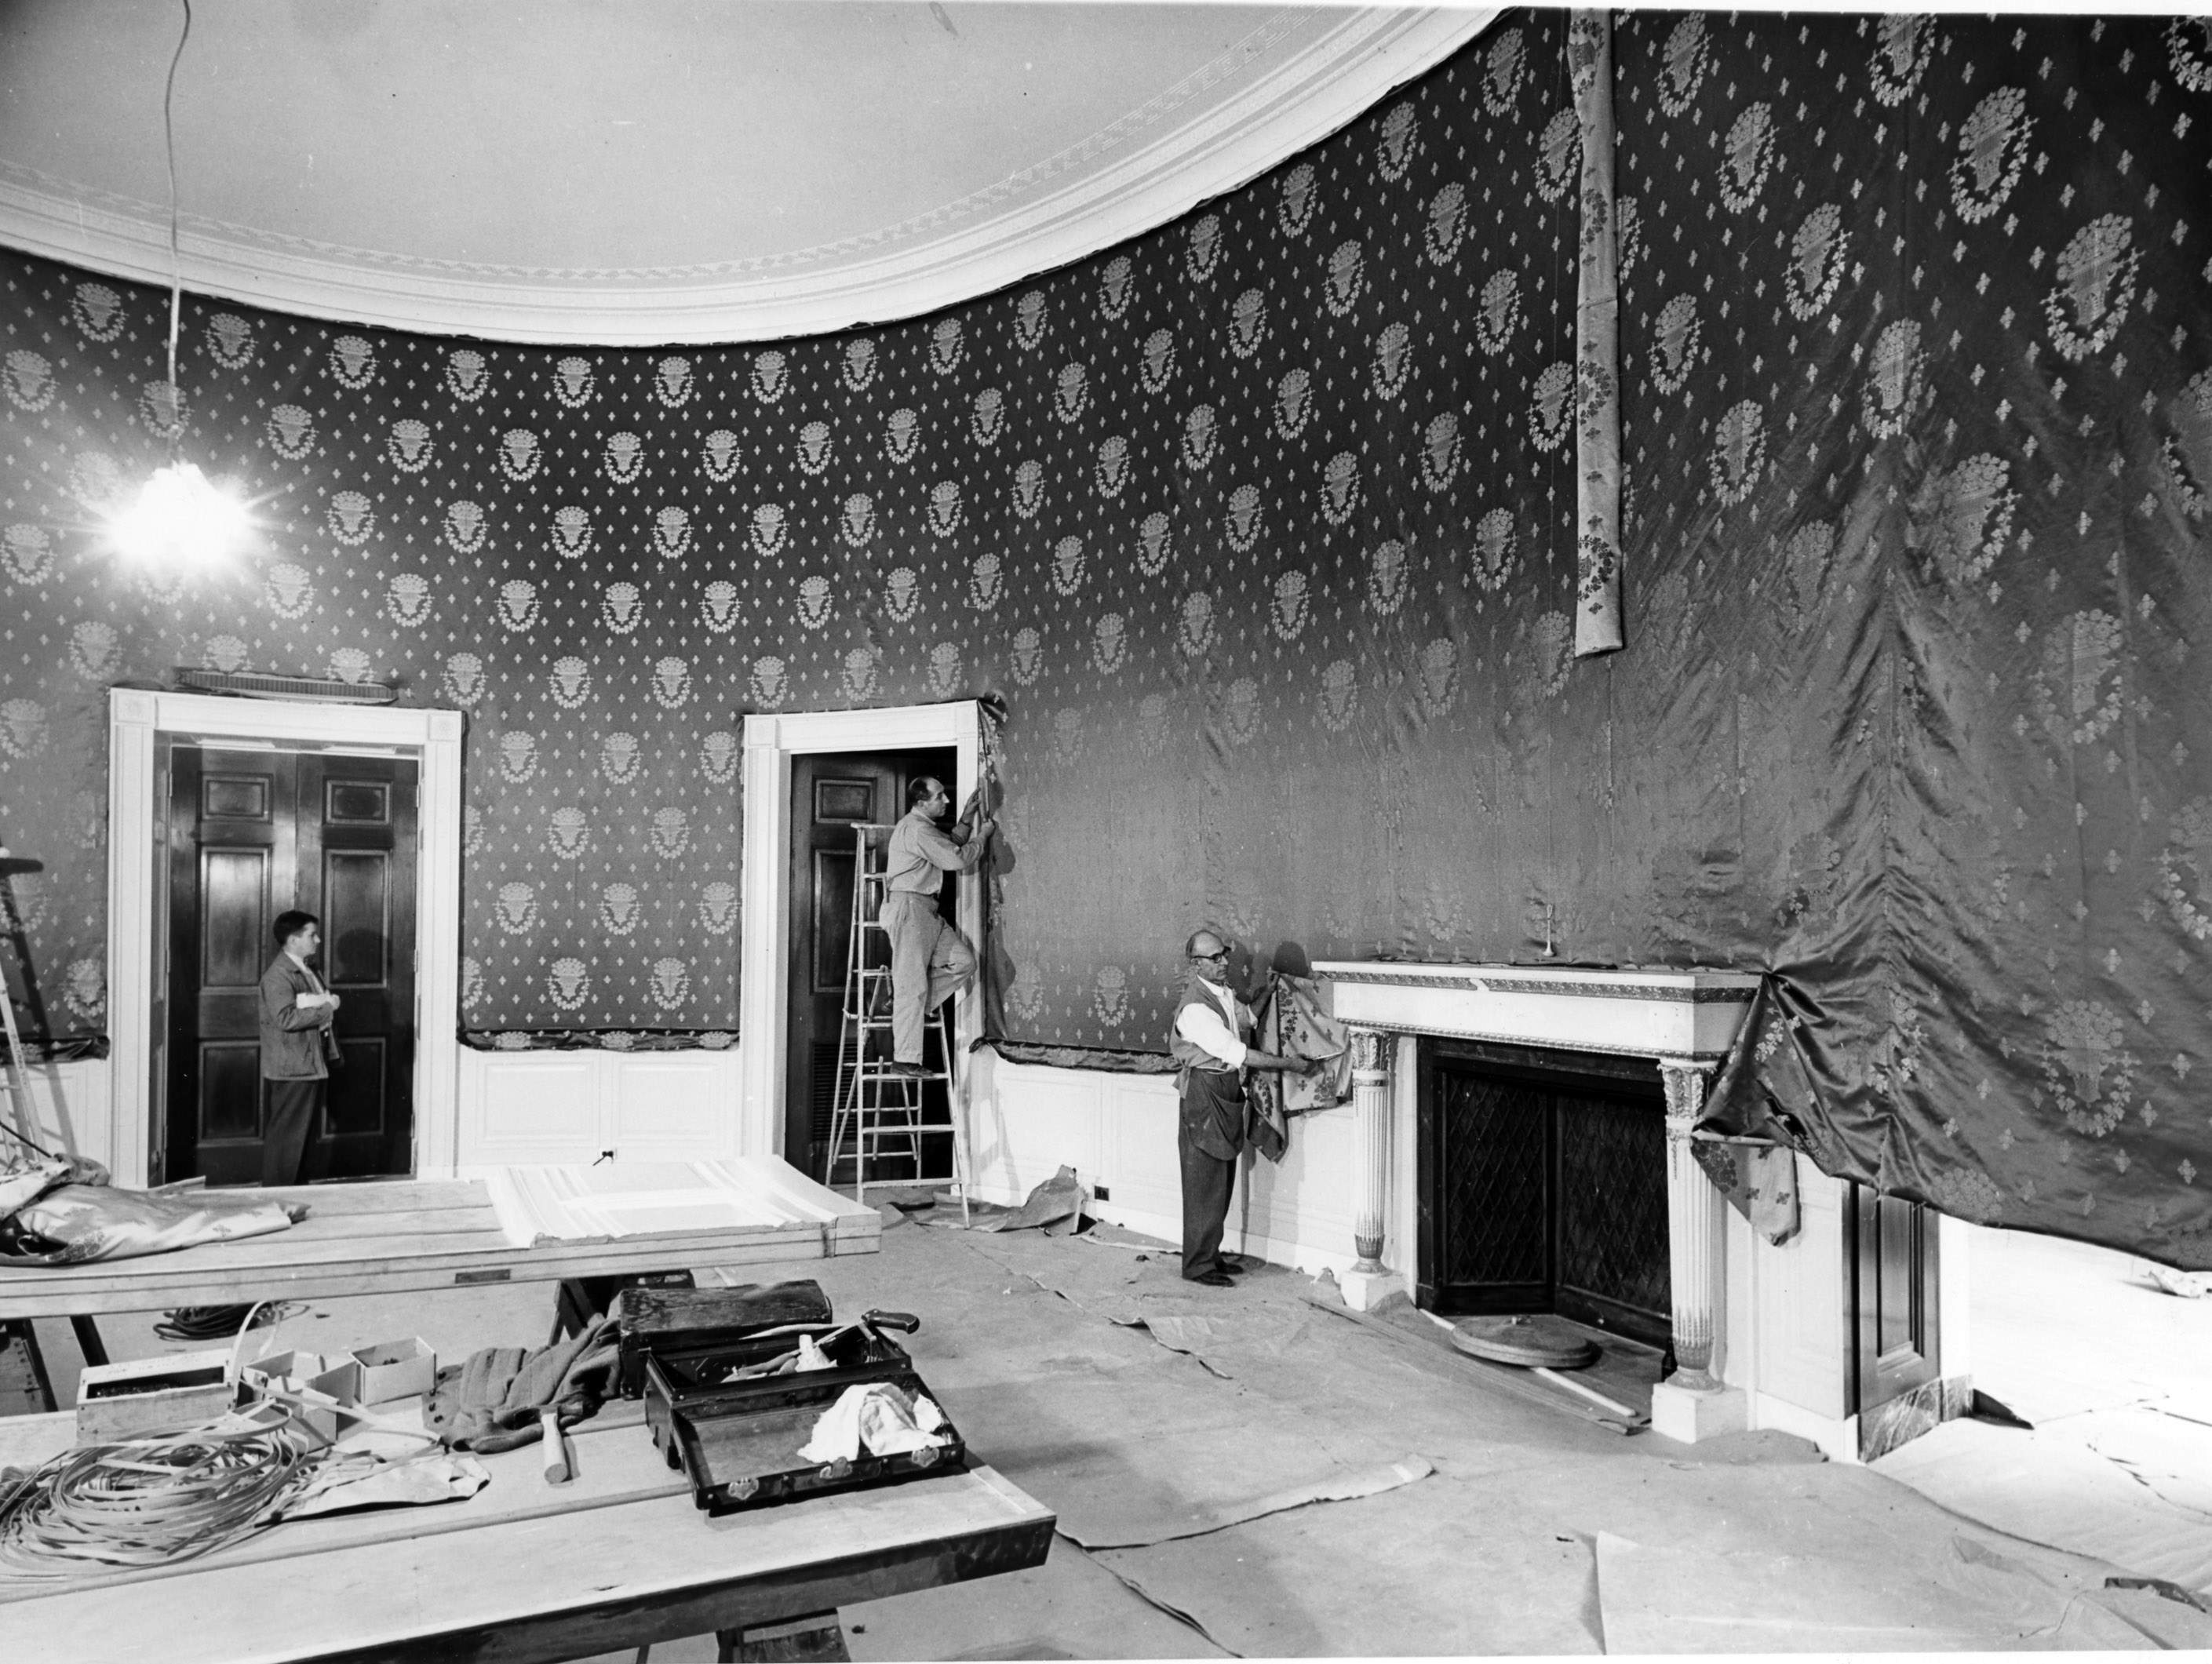 Northeast View of the White House Blue Room